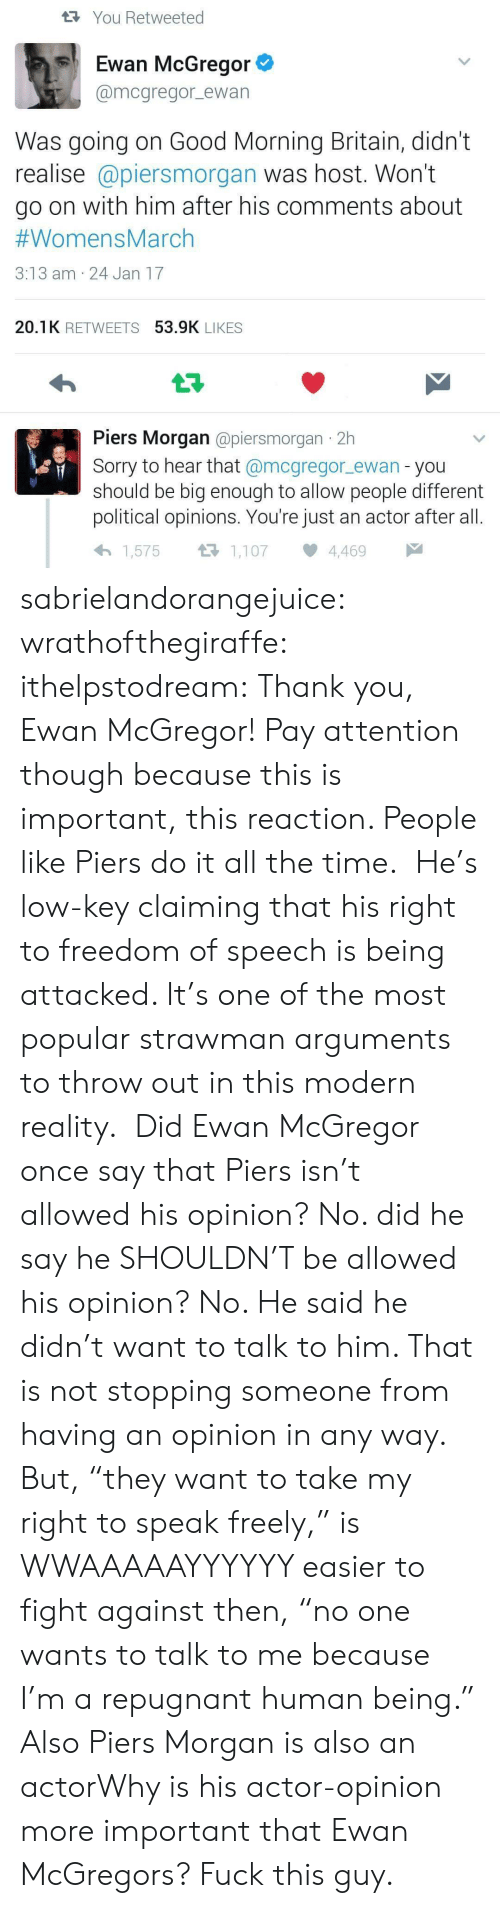 """Fuck This Guy: tYou Retweeted  Ewan McGregor  @mcgregor ewan  Was going on Good Morning Britain, didn't  realise @piersmorgan was host. Won't  go on with him after his comments about  #WomensMarch  3:13 am 24 Jan 17  20.1K RETWEETS 53.9K LIKES  t7  Piers Morgan @piersmorgan 2h  Sorry to hear that @mcgregor_ewan - you  should be big enough to allow people different  political opinions. You're just an actor after all.  1,107  1,575  4,469 sabrielandorangejuice: wrathofthegiraffe:  ithelpstodream: Thank you, Ewan McGregor! Pay attention though because this is important, this reaction. People like Piers do it all the time. He's low-key claiming that his right to freedom of speech is being attacked. It's one of the most popular strawman arguments to throw out in this modern reality. Did Ewan McGregor once say that Piers isn't allowed his opinion? No. did he say he SHOULDN'T be allowed his opinion? No. He said he didn't want to talk to him. That is not stopping someone from having an opinion in any way. But,""""they want to take my right to speak freely,"""" is WWAAAAAYYYYYY easier to fight against then,""""no one wants to talk to me because I'm a repugnant human being.""""  Also Piers Morgan is also an actorWhy is his actor-opinion more important that Ewan McGregors?  Fuck this guy."""